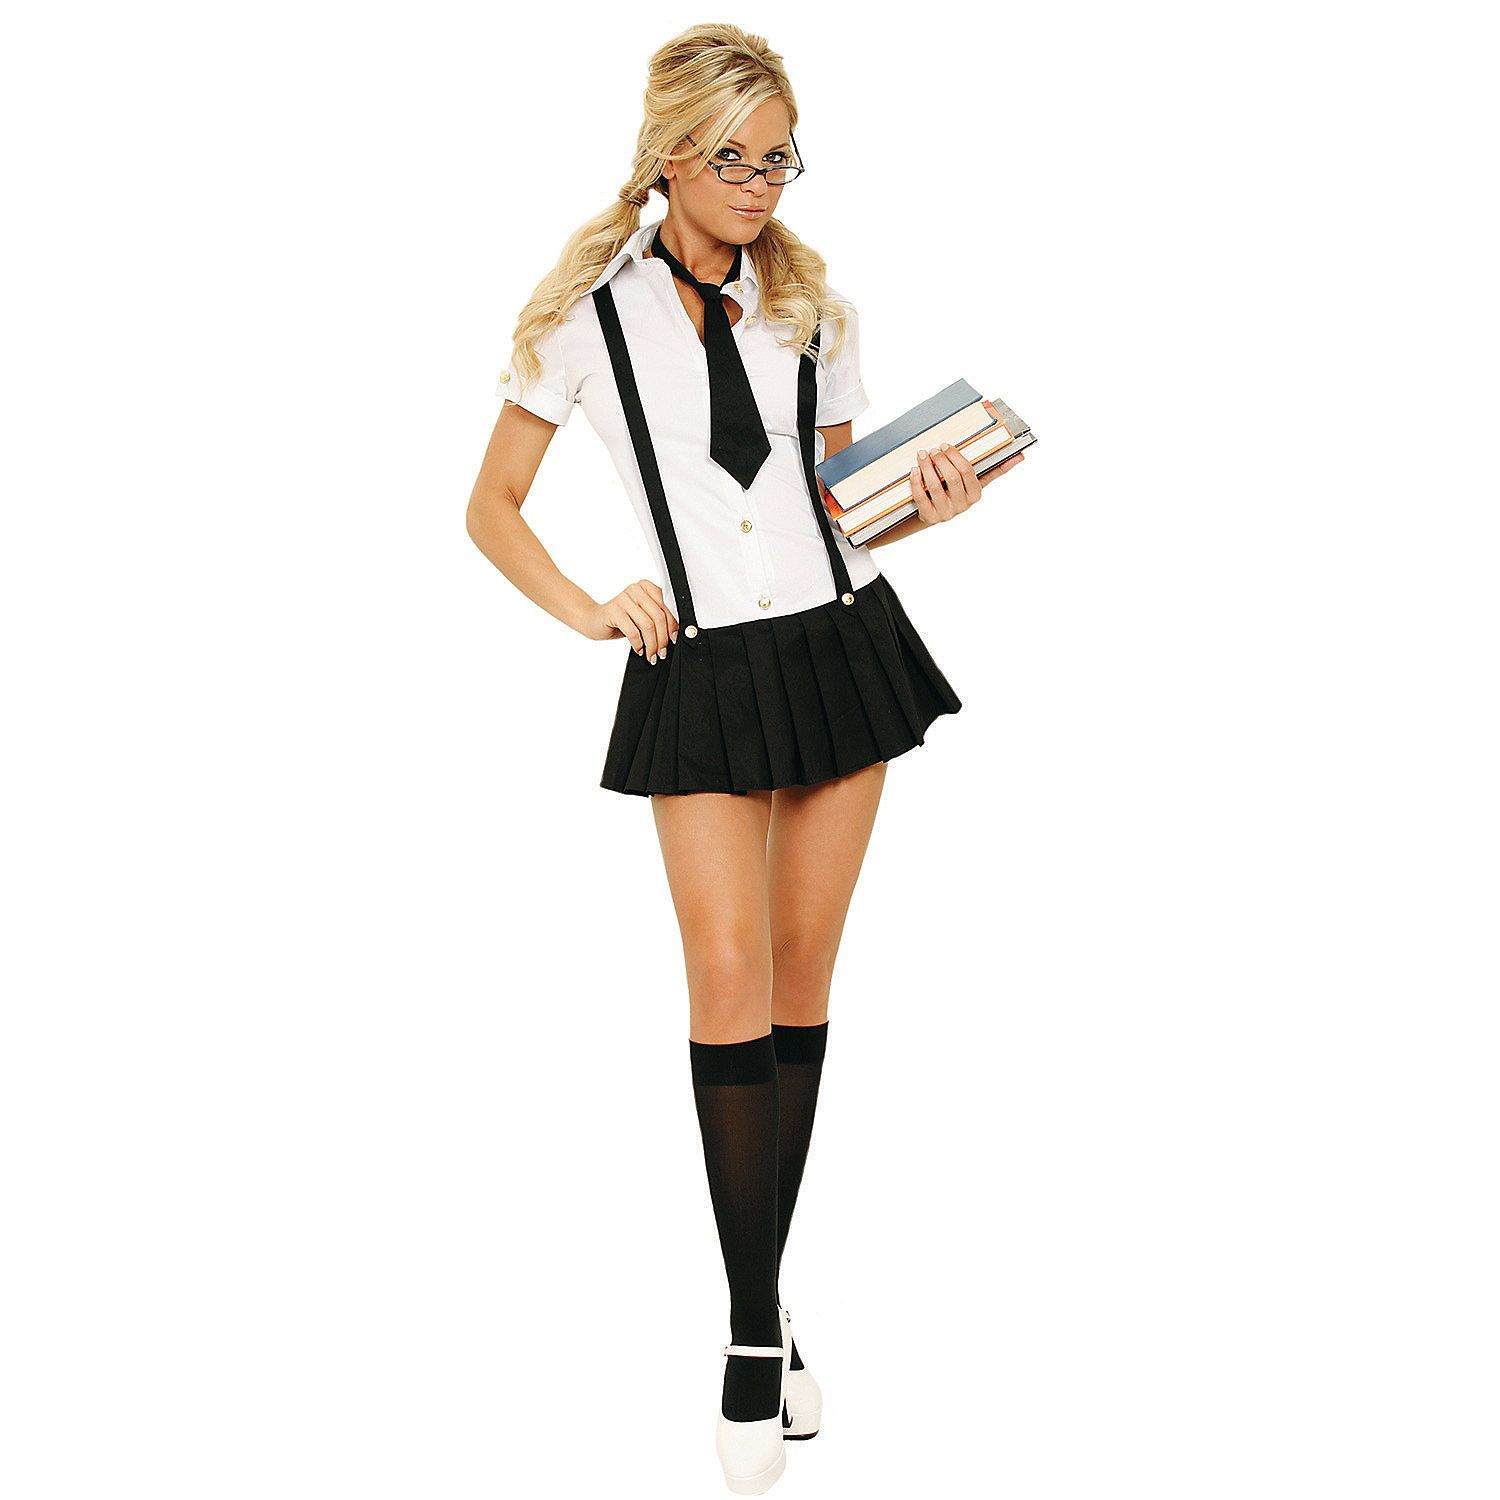 sexual-fantasy-school-girl-outfit